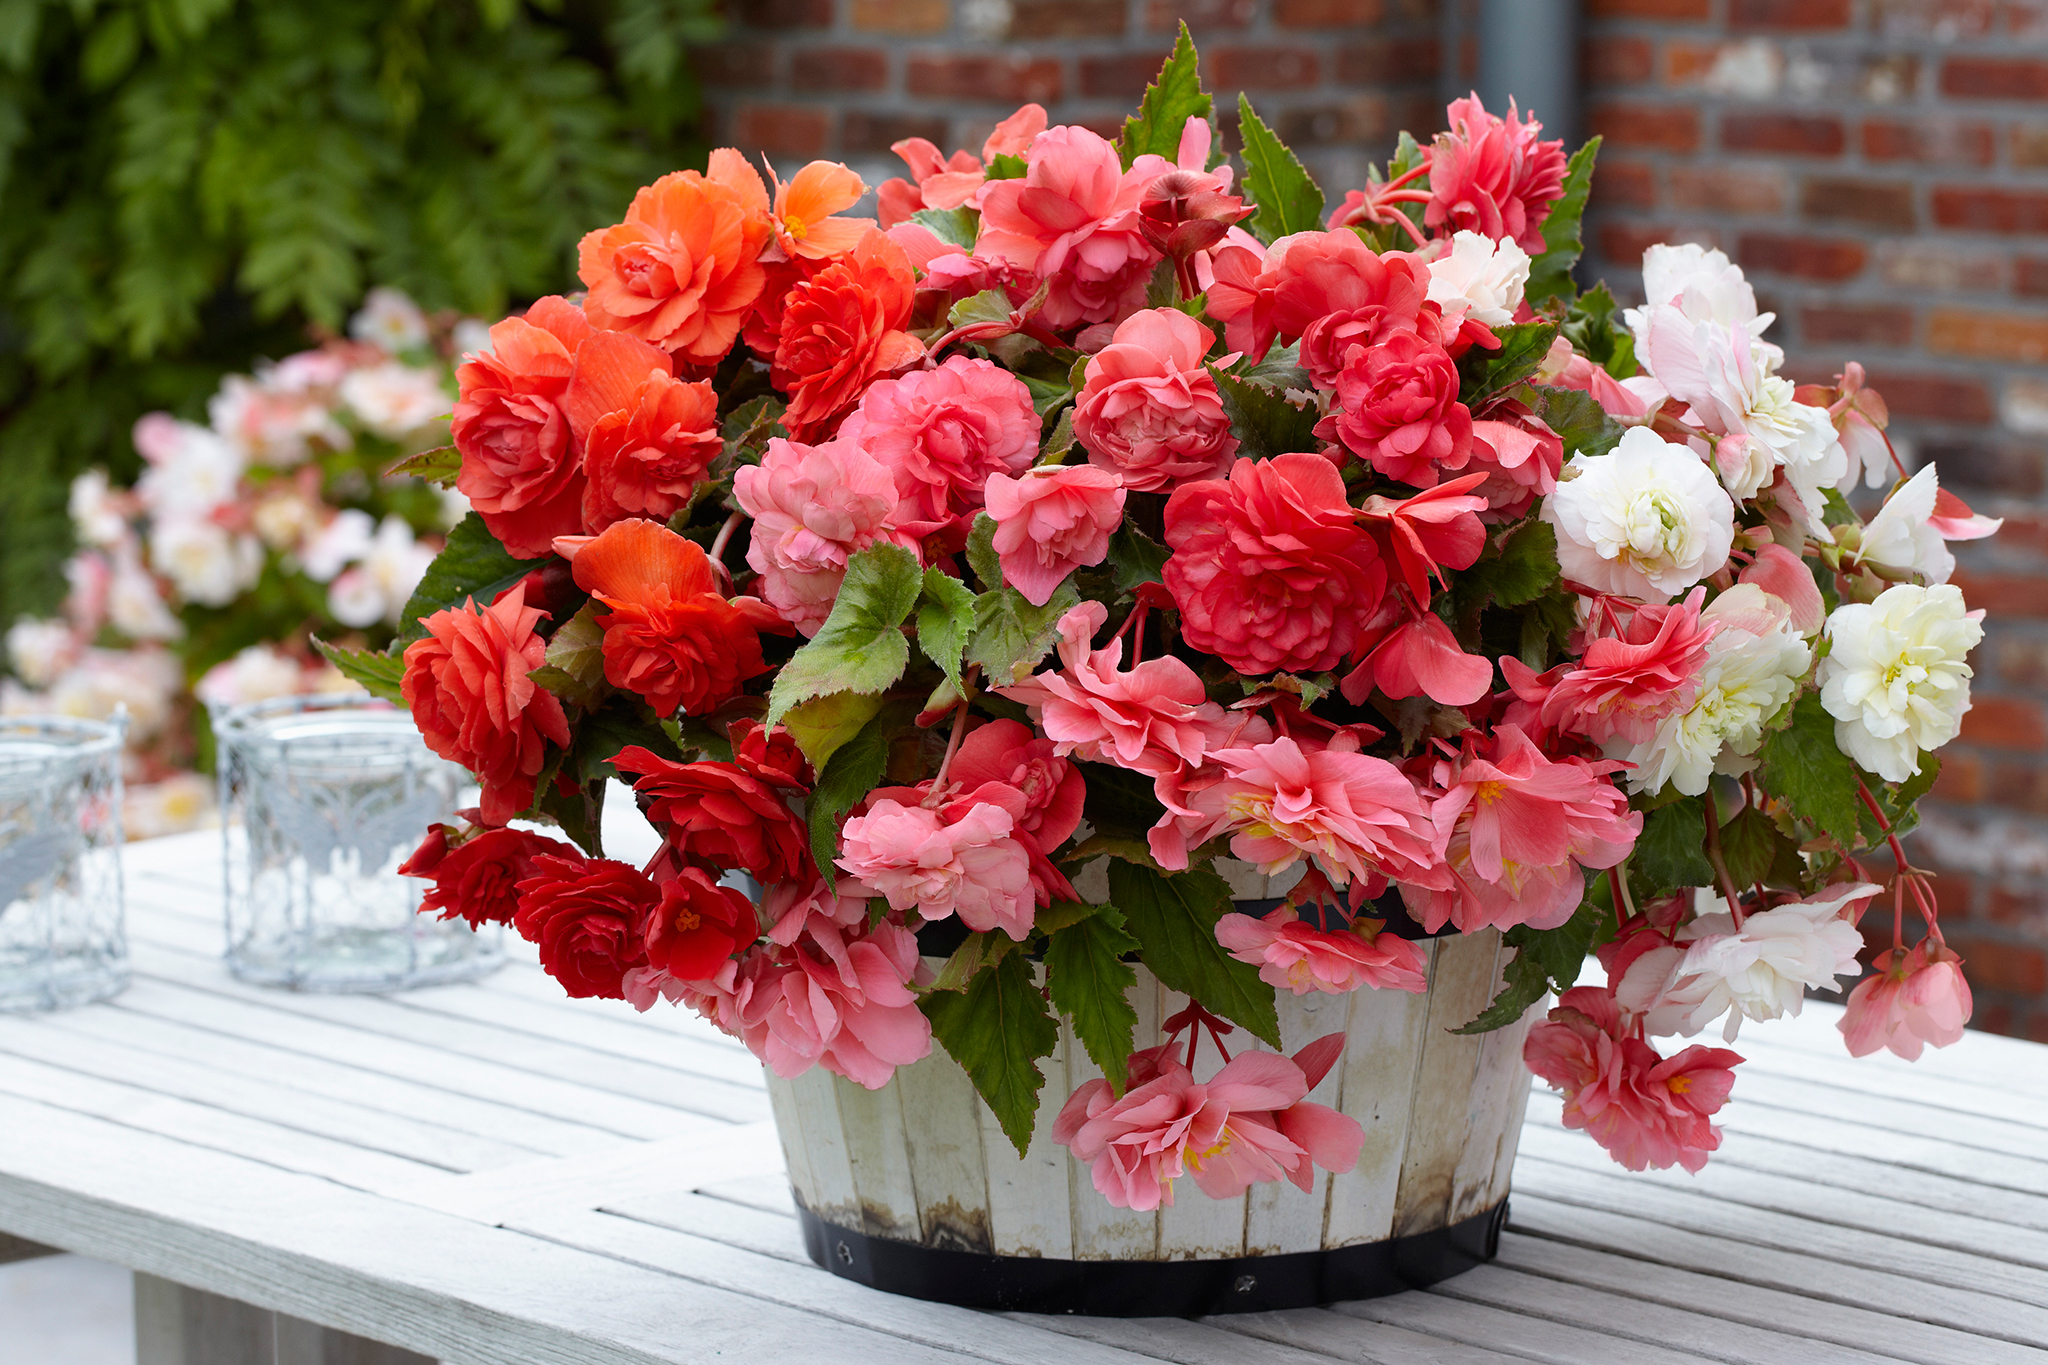 Hayloft begonia offer